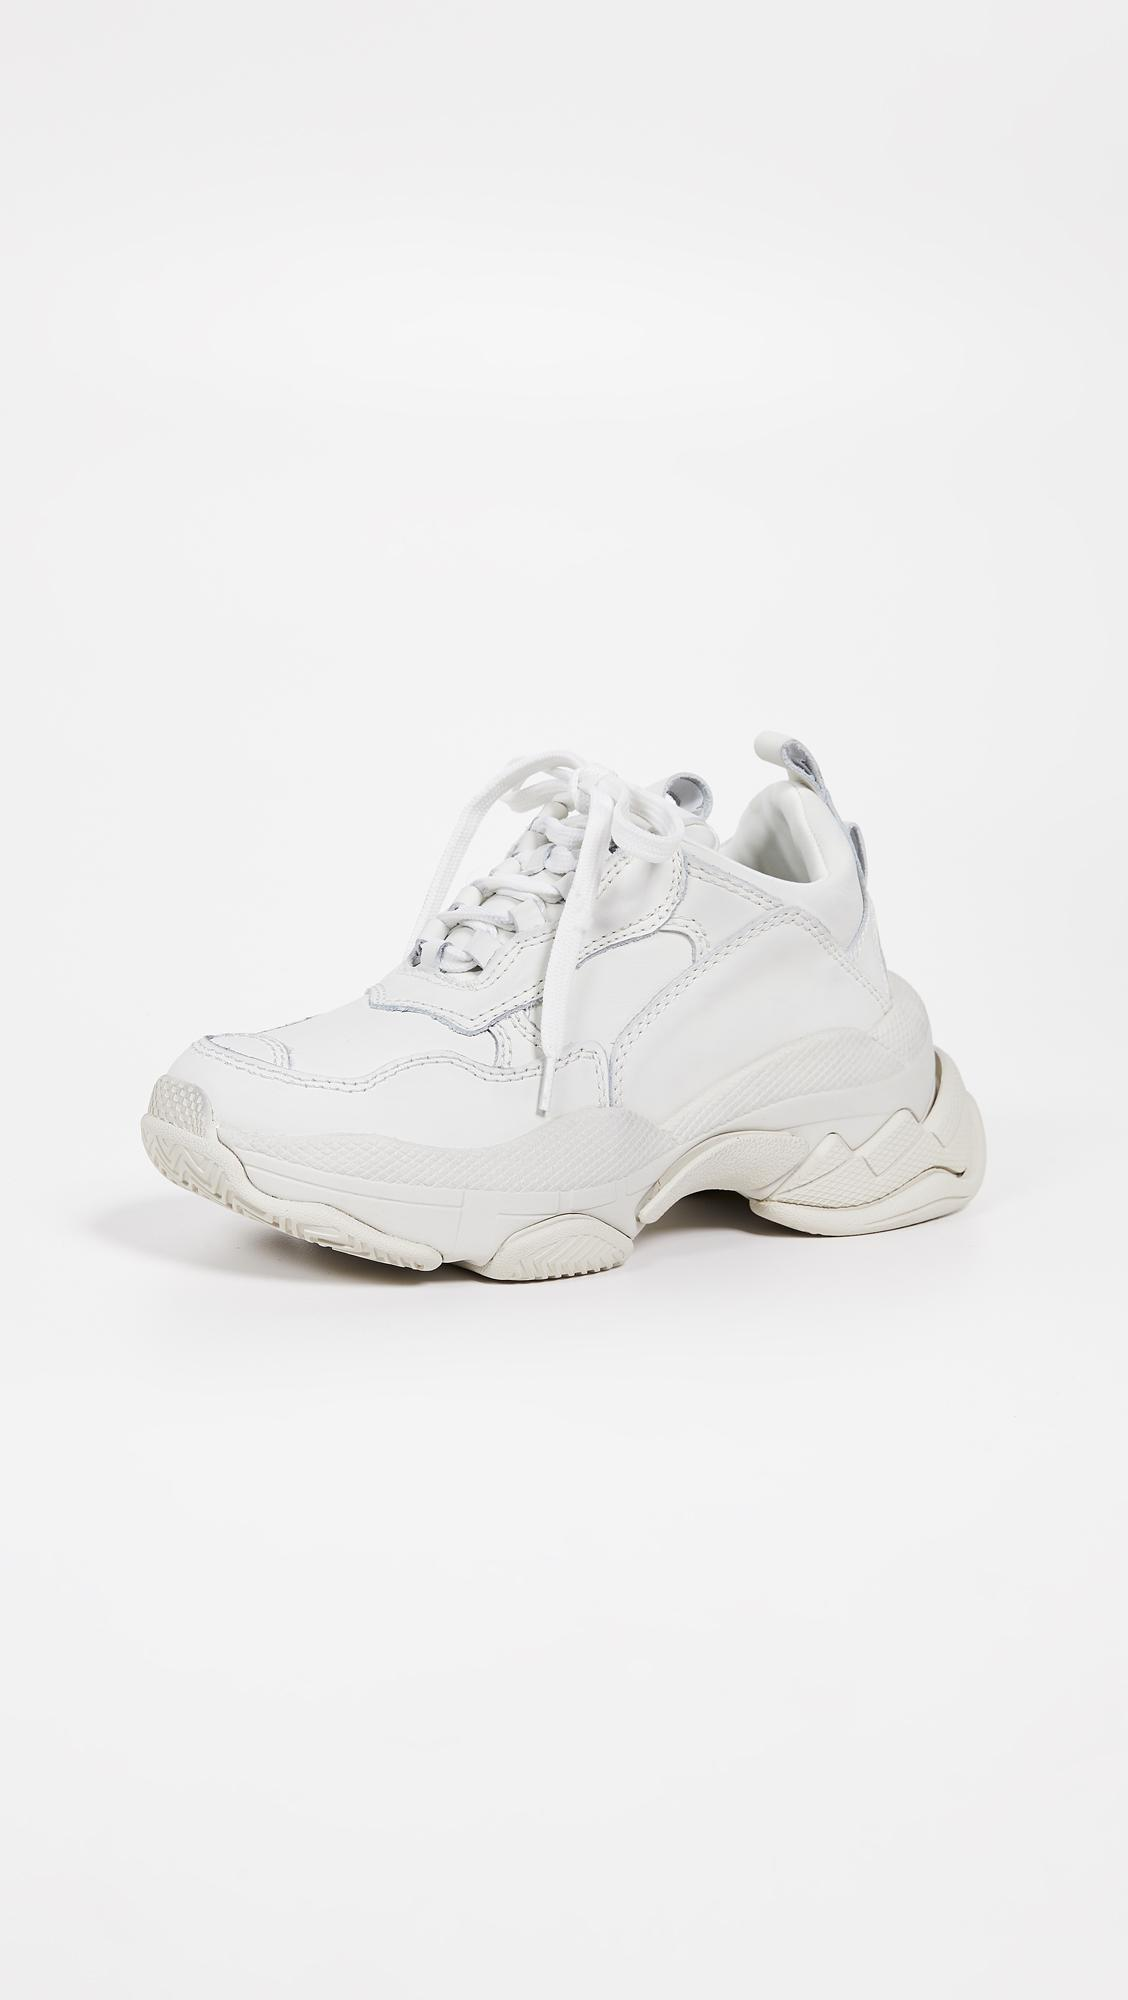 0aec4683f11 Lyst - Jeffrey Campbell Lo-fi Sneakers in White - Save 47%